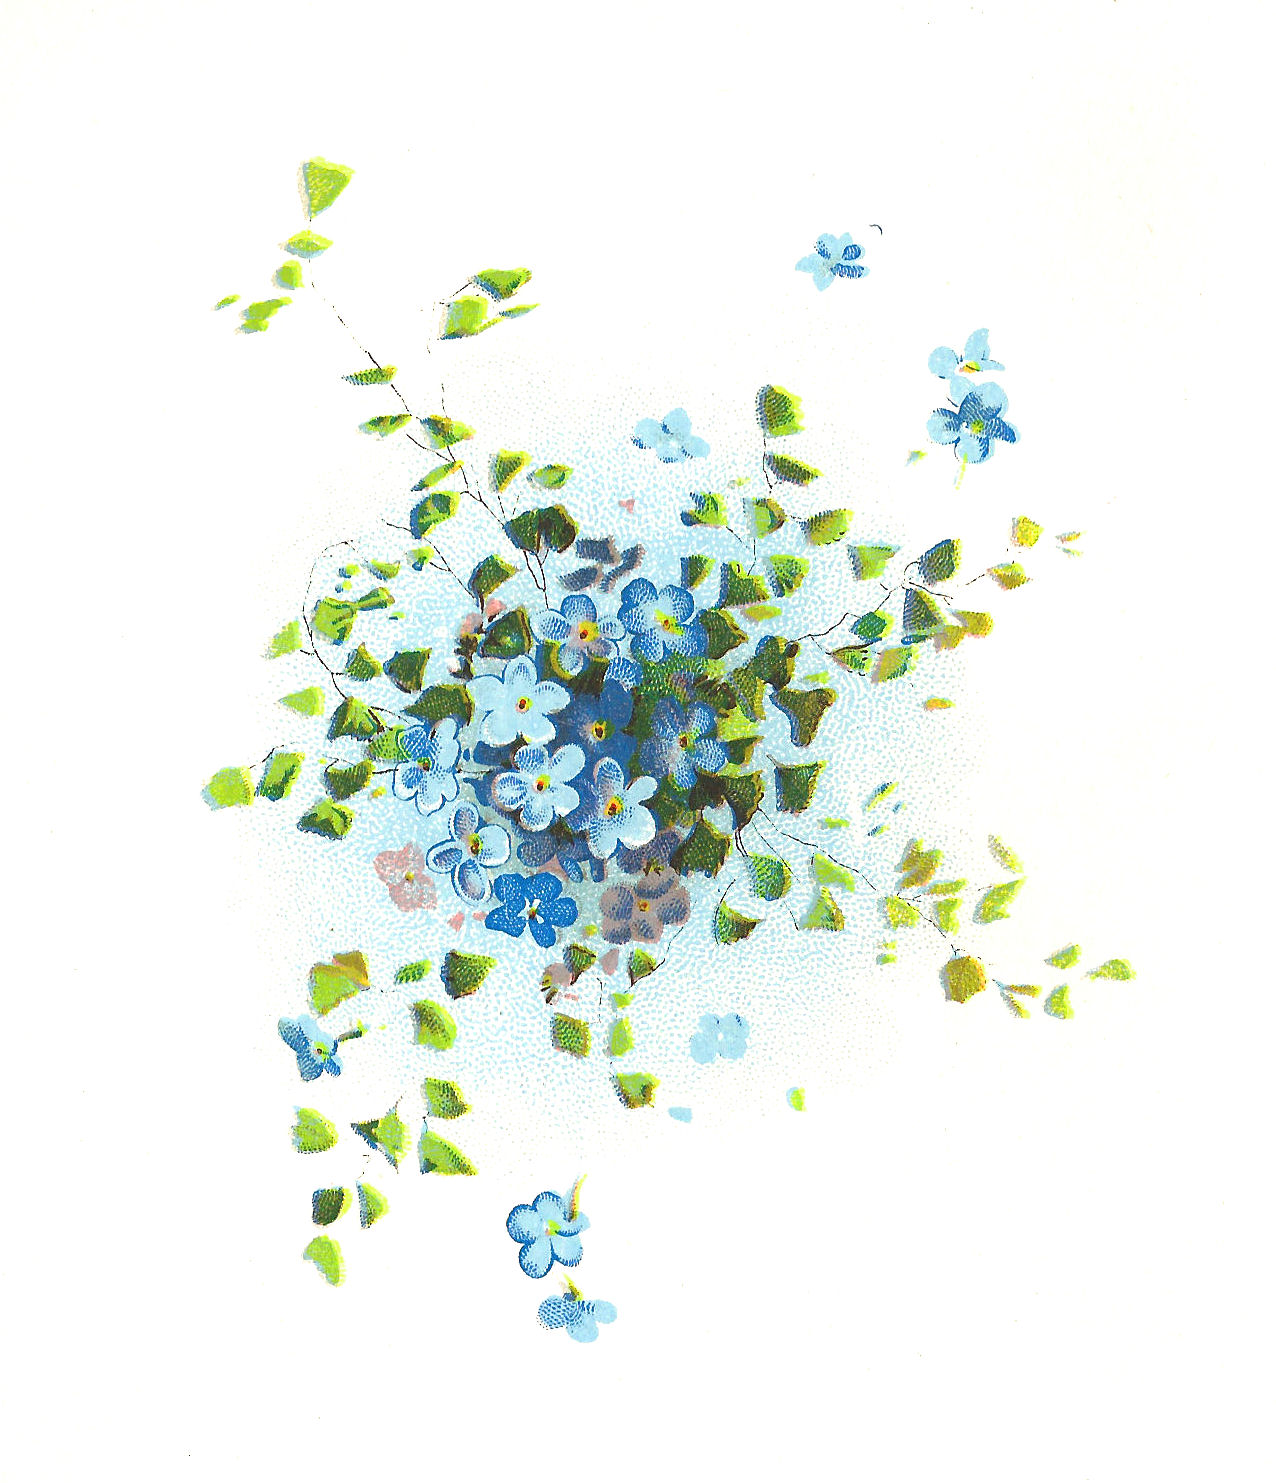 ... Flower Graphic: Forget-Me-Not Flowers Clip Art Cluster with Leaves